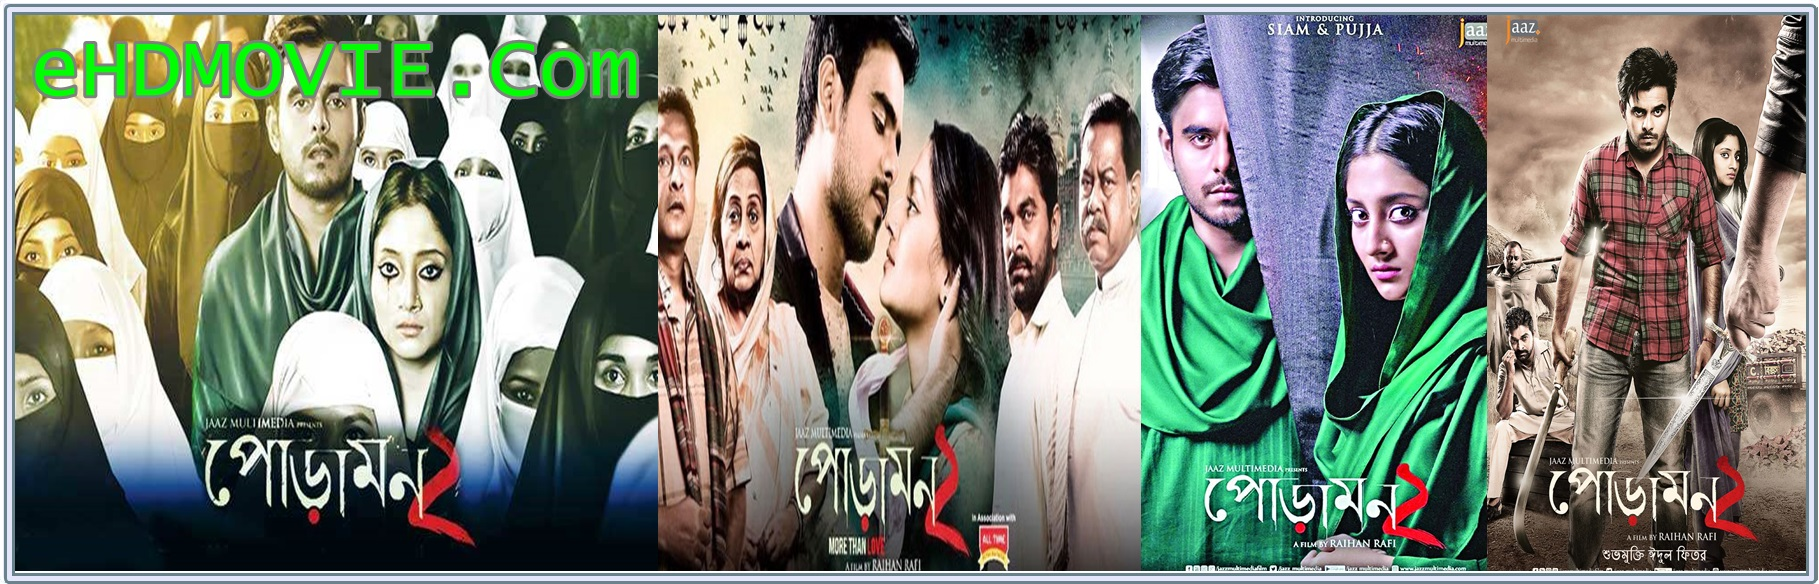 Poramon 2 2018 Bengali Full Movie Original 480p - HEVC - 720p ORG WEB-DL 450MB - 800MB - 1.2GB